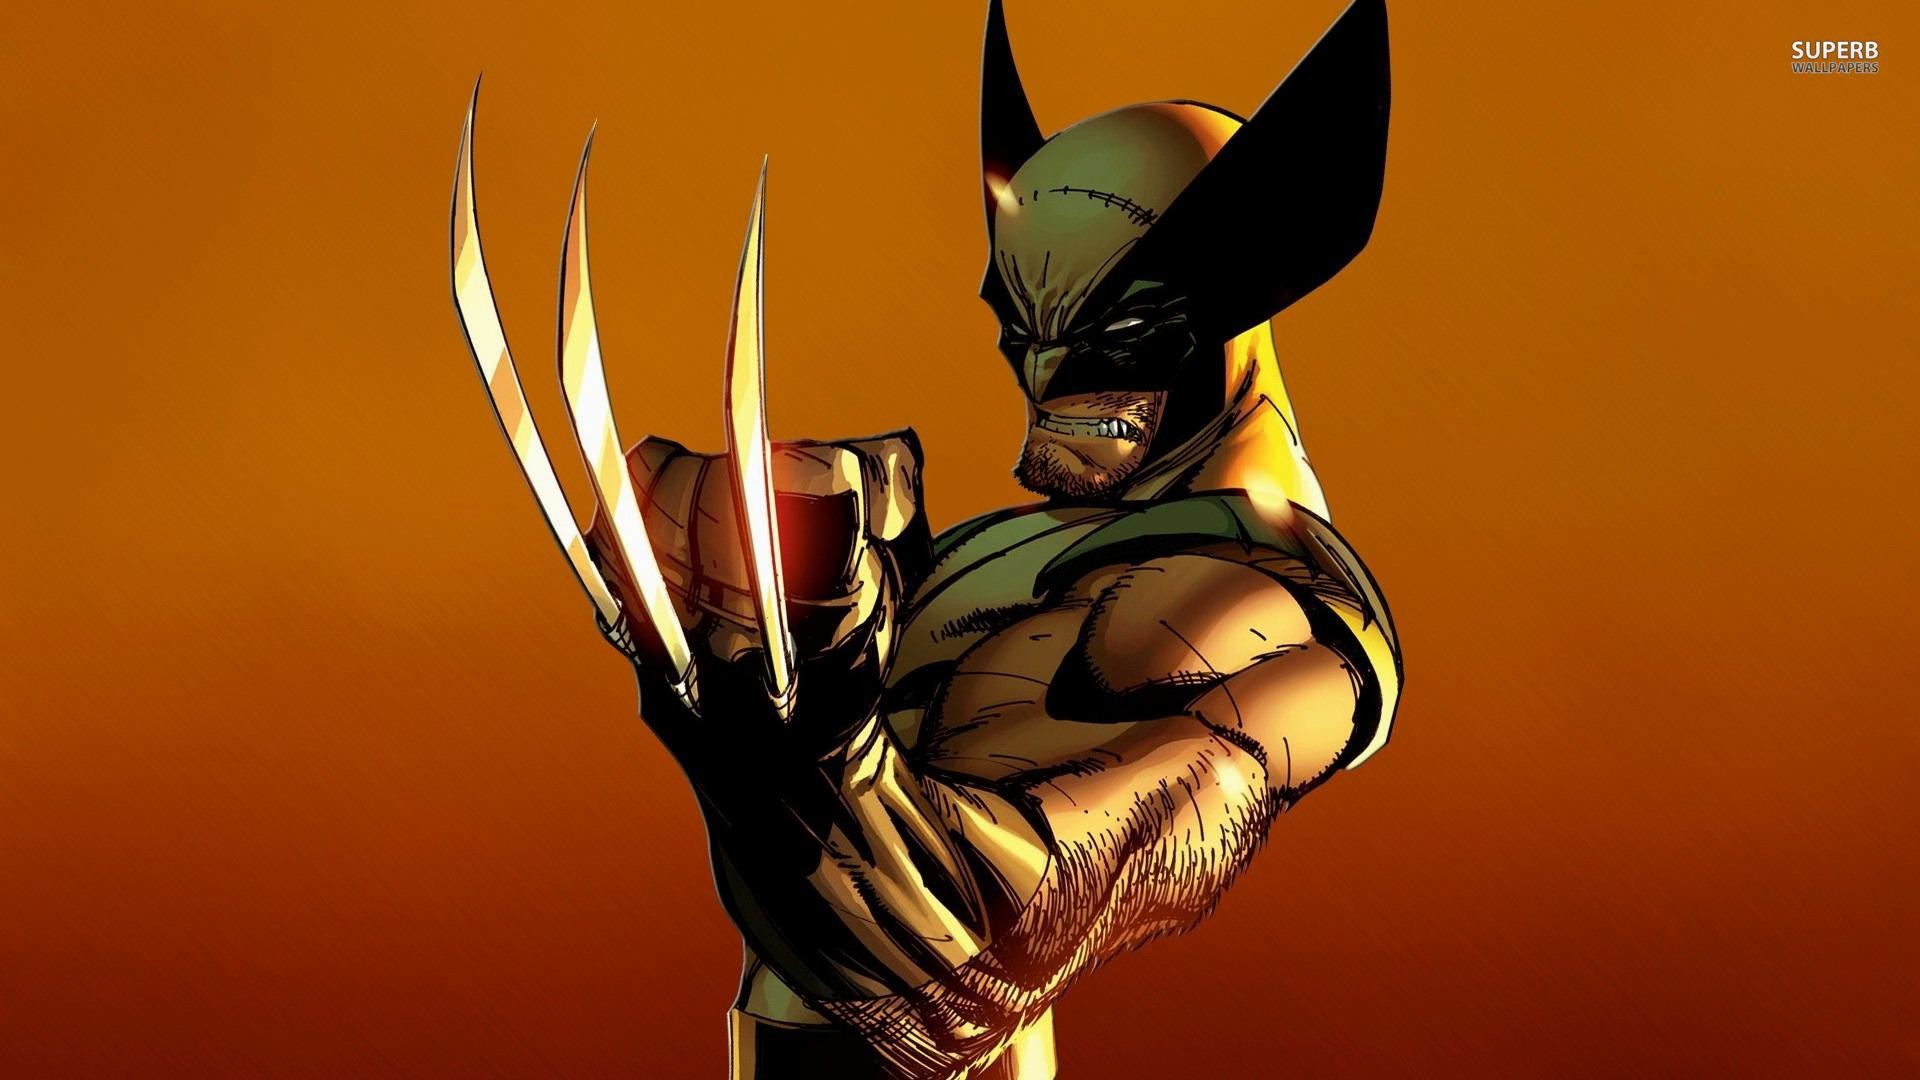 1920x1080 The Wolverine Movie Wallpapers HD Wallpapers Wolverine Pics Wallpapers  Wallpapers)